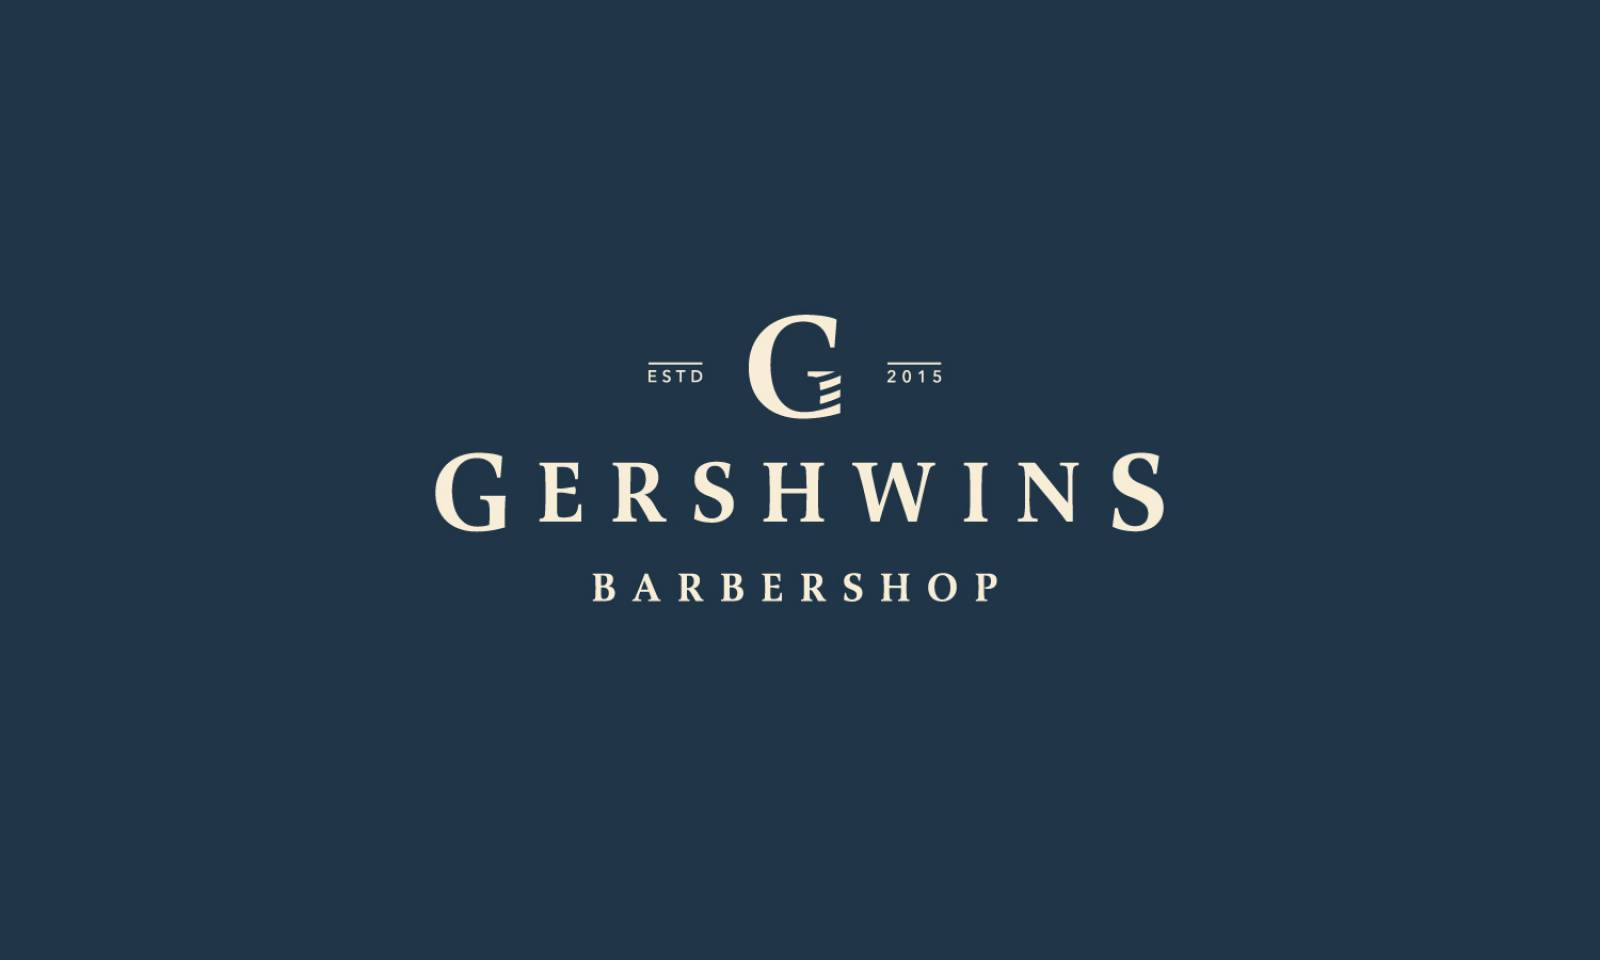 logo-Gershwins-corporate-identity-agency-graphic-design-canterbury.jpg